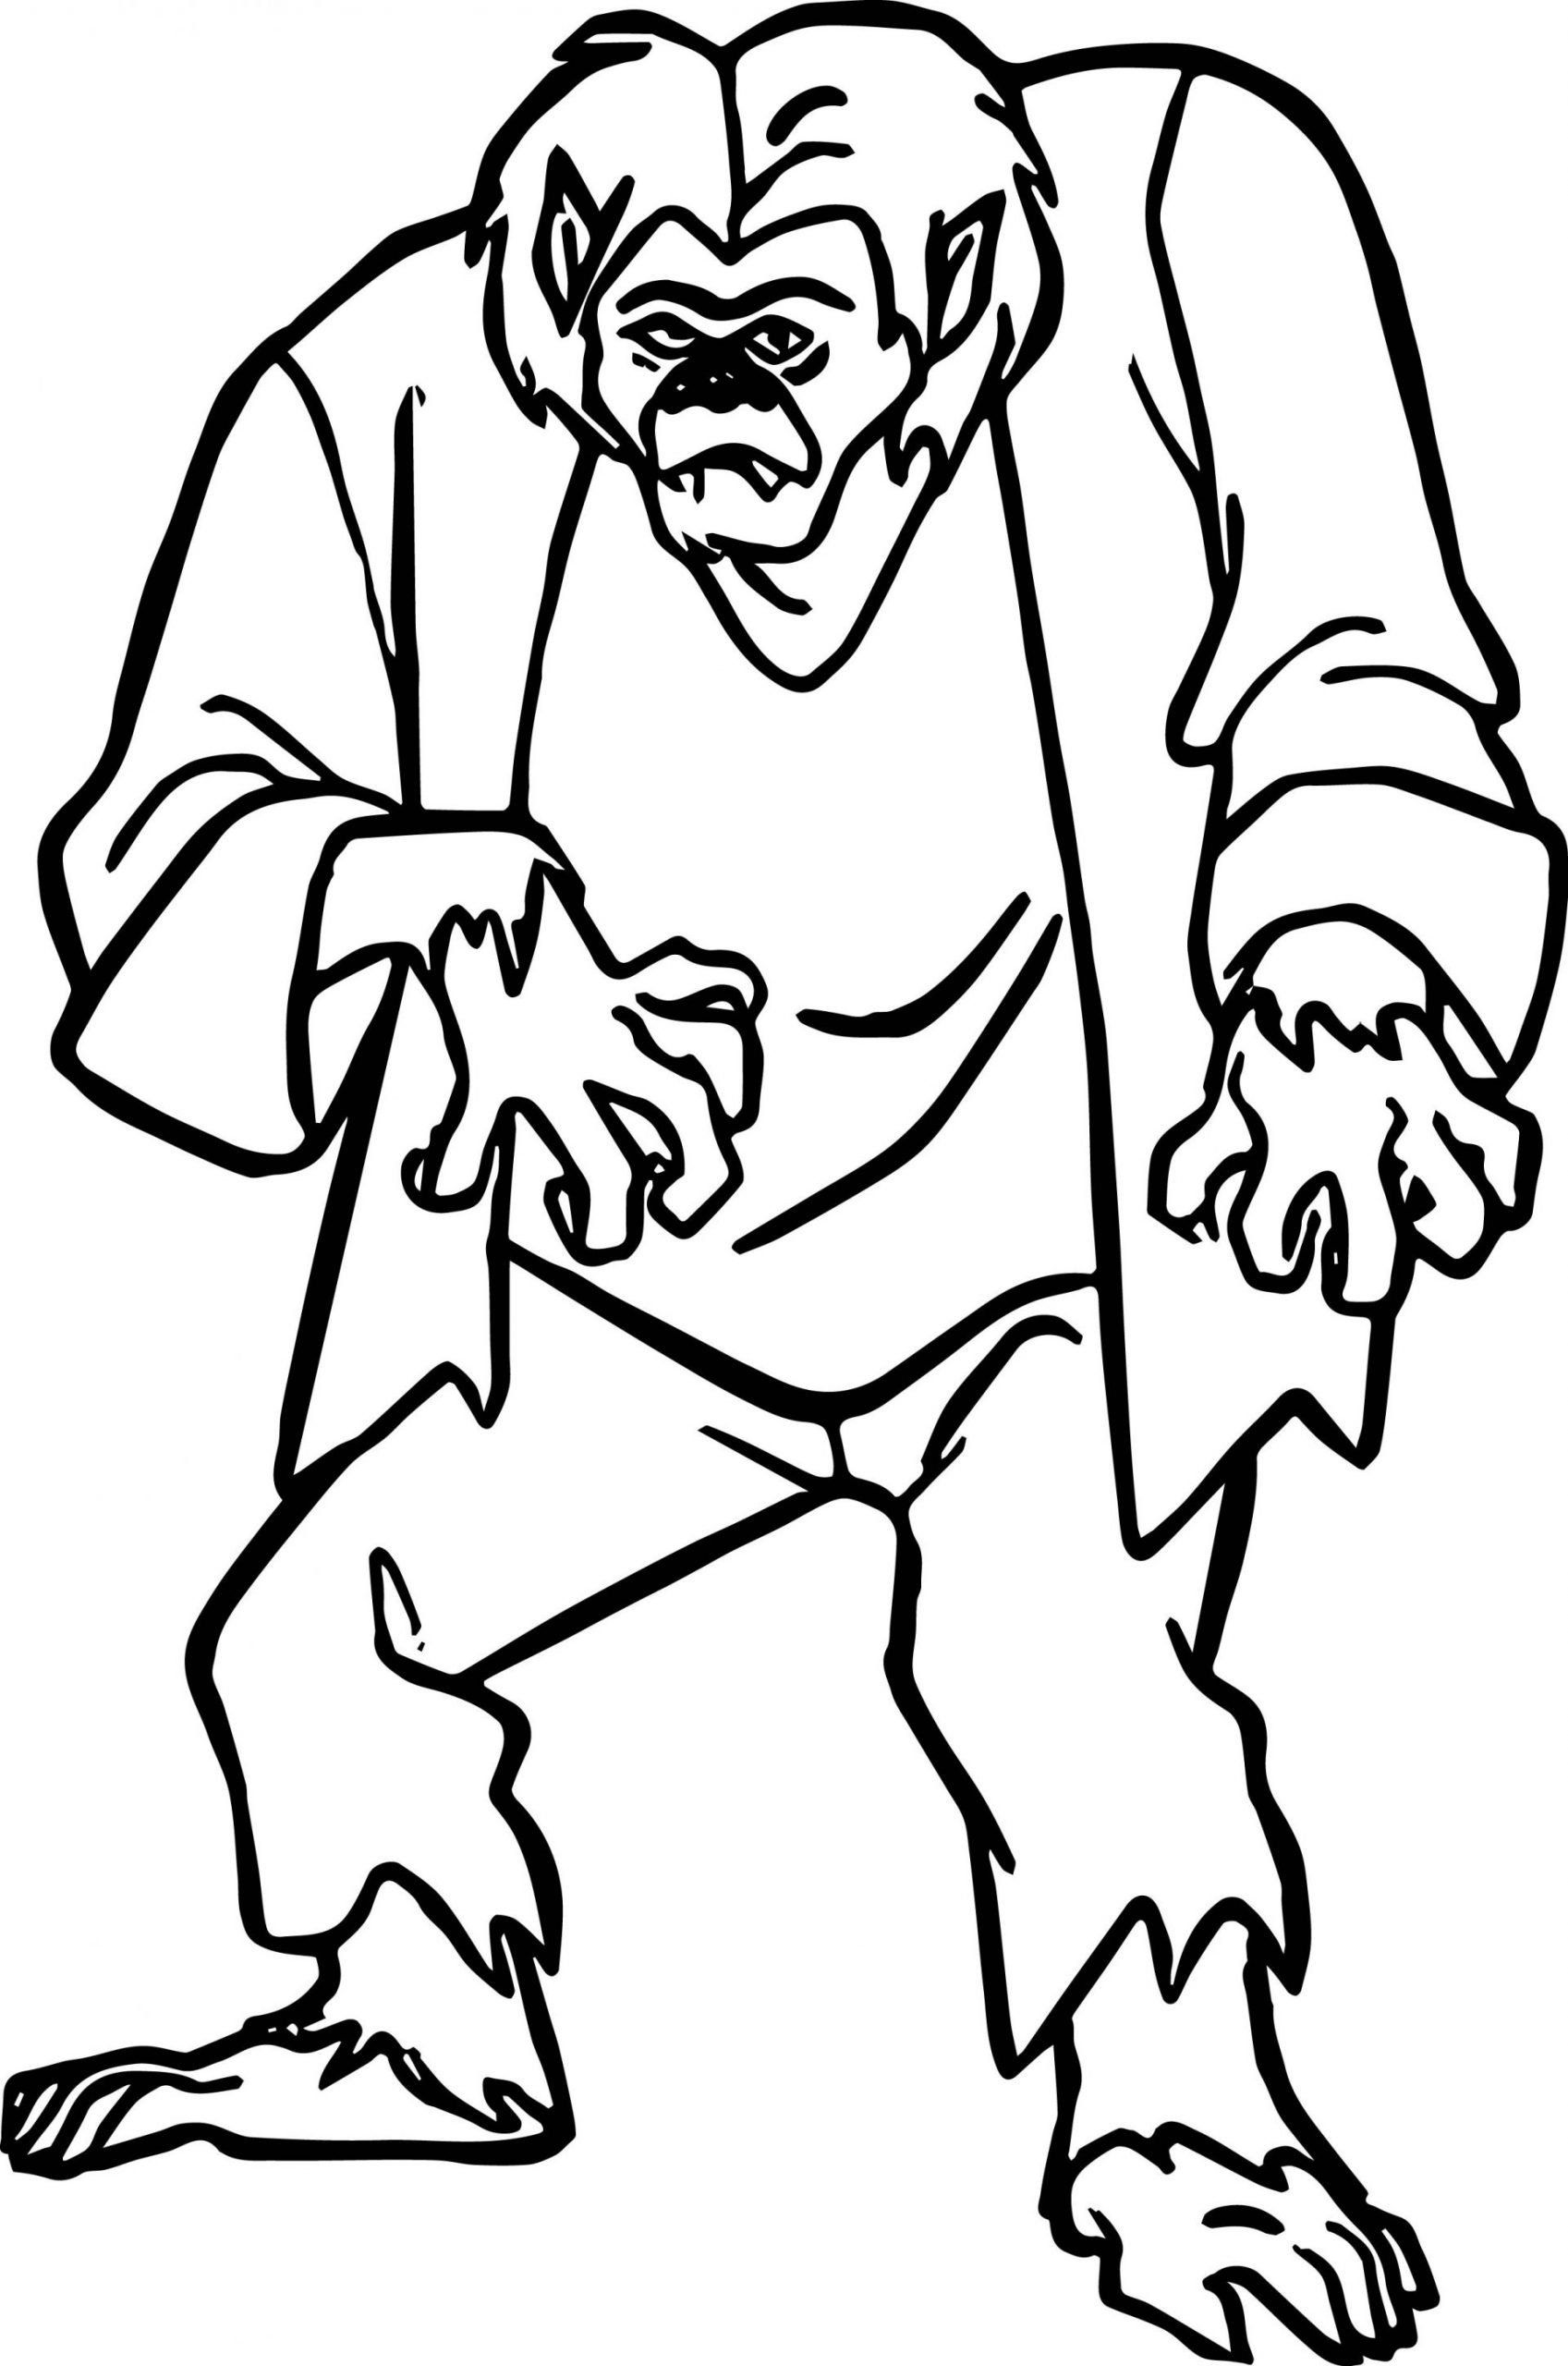 Scooby Doo Coloring Pages Coloring Book Scooby Doo Drawing Flintstones Coloringages Scooby Doo Coloring Pages Monster Coloring Pages Coloring Pages